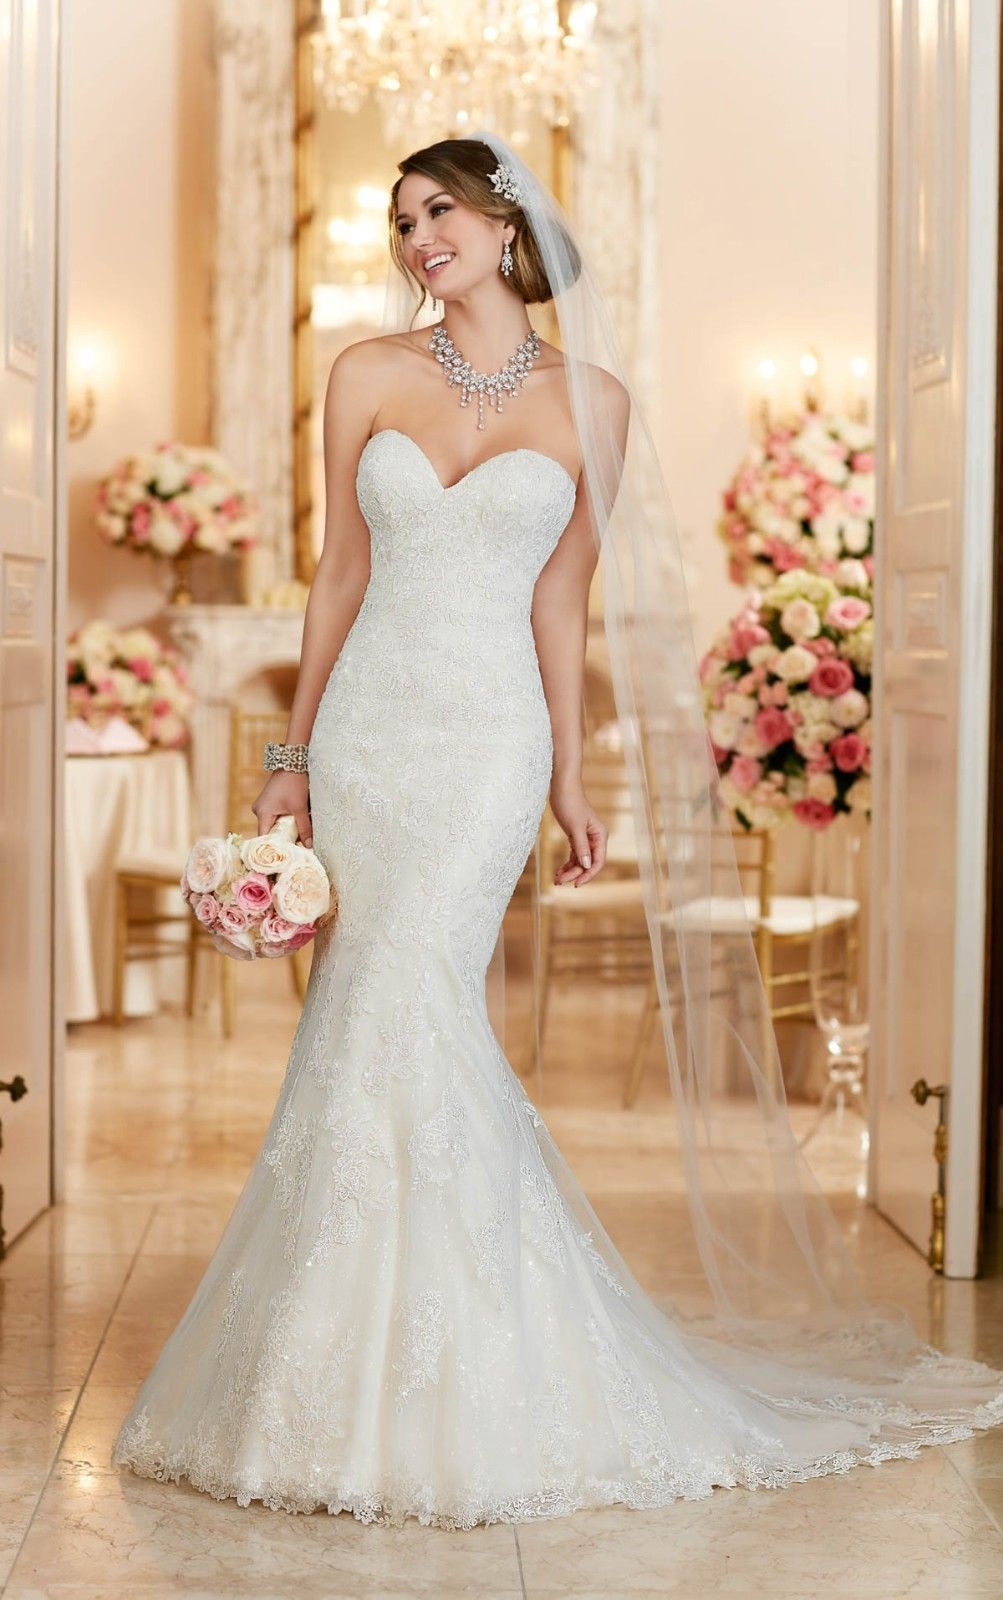 Details about gorgeous stella york lace wedding dress style